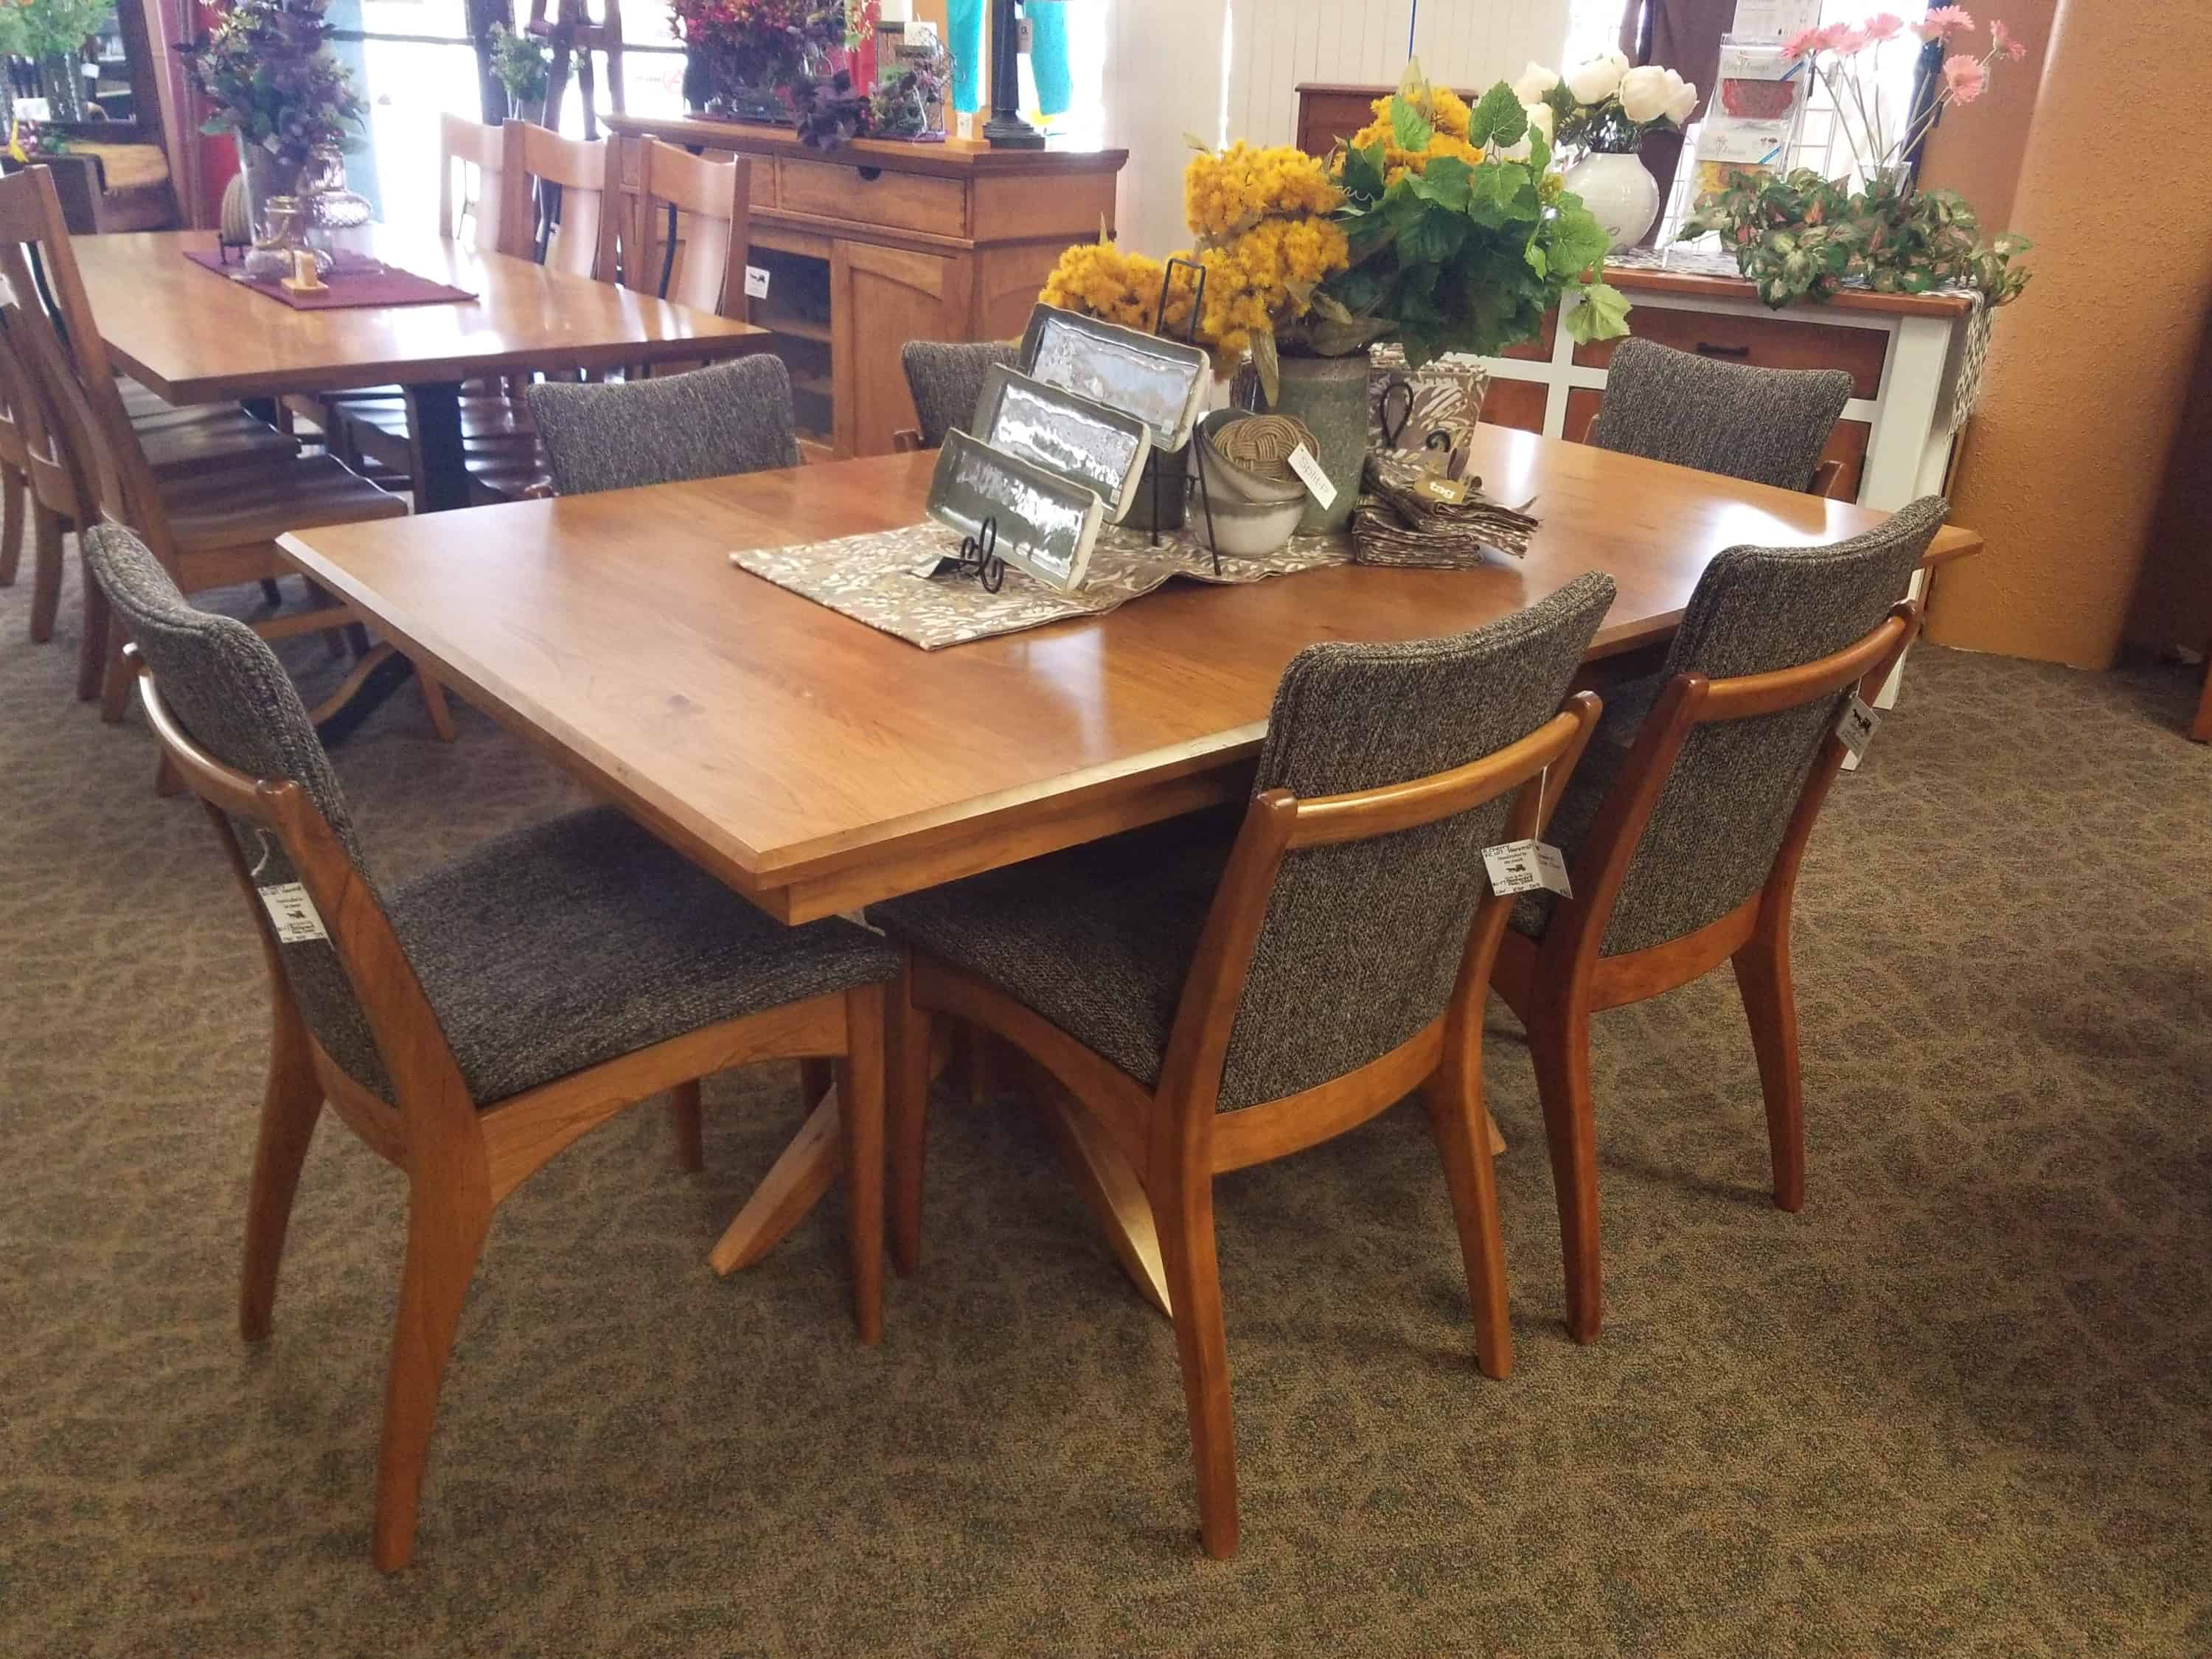 Milan Dining Set, Includes Double Pedestal Table and 6 Madrid Side Chairs  in Rustic Cherry and a Harvest Finish